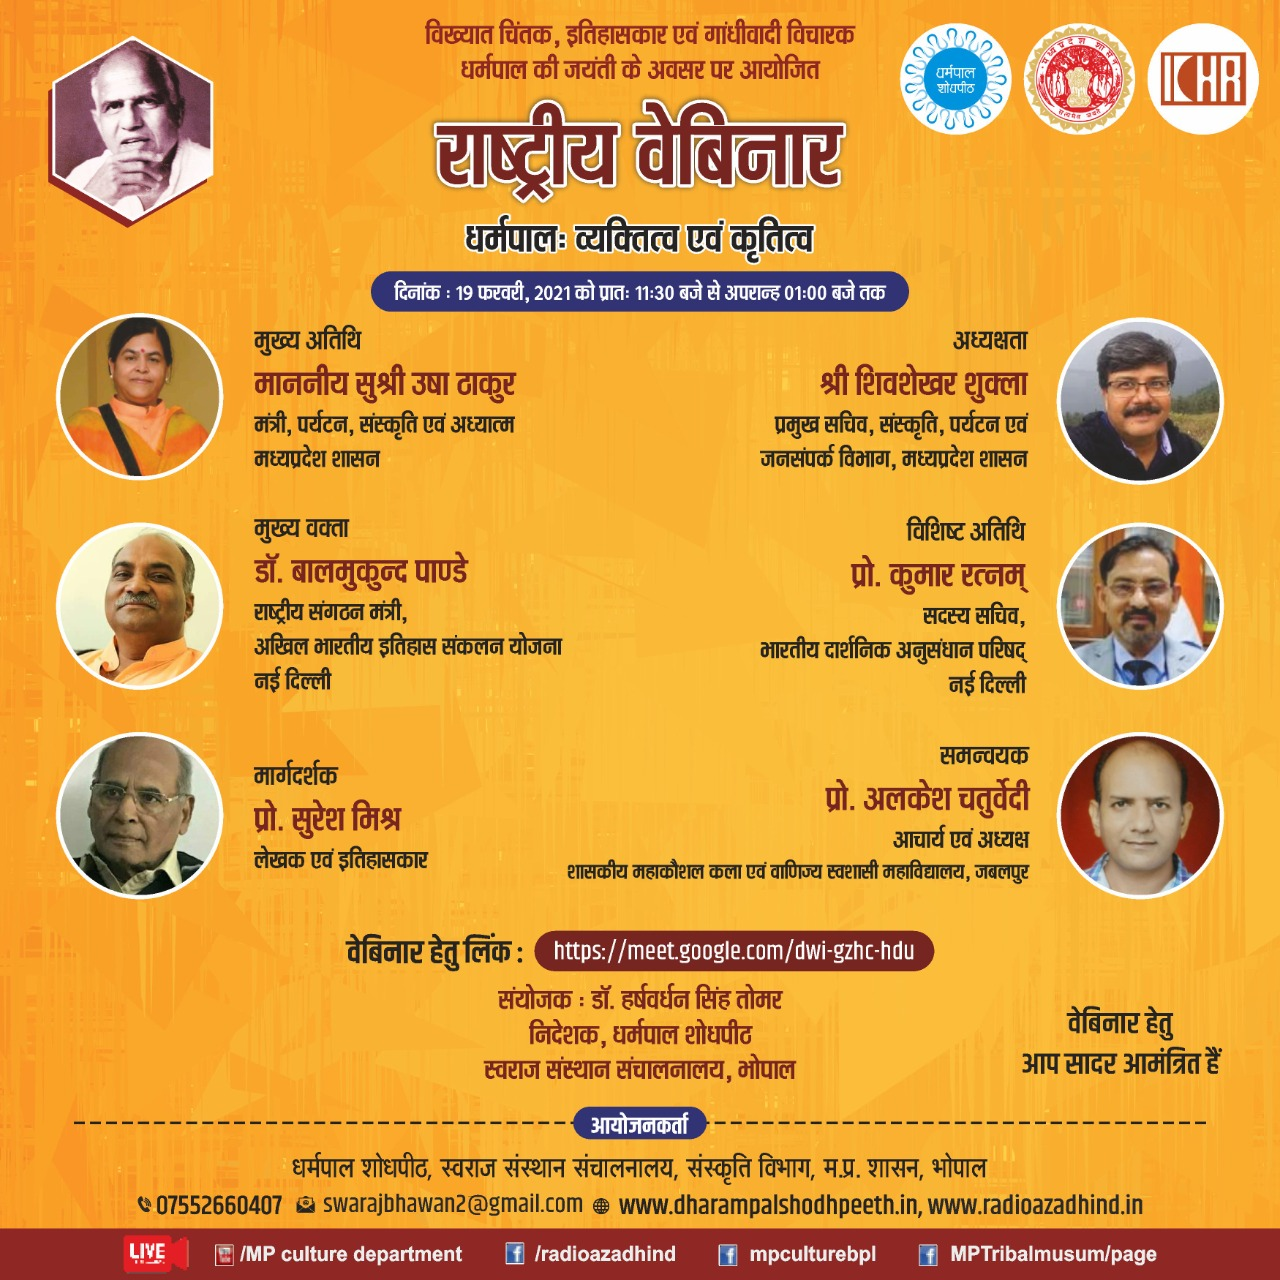 event organised by the Dharampal Shodh Peeth, Bhopal